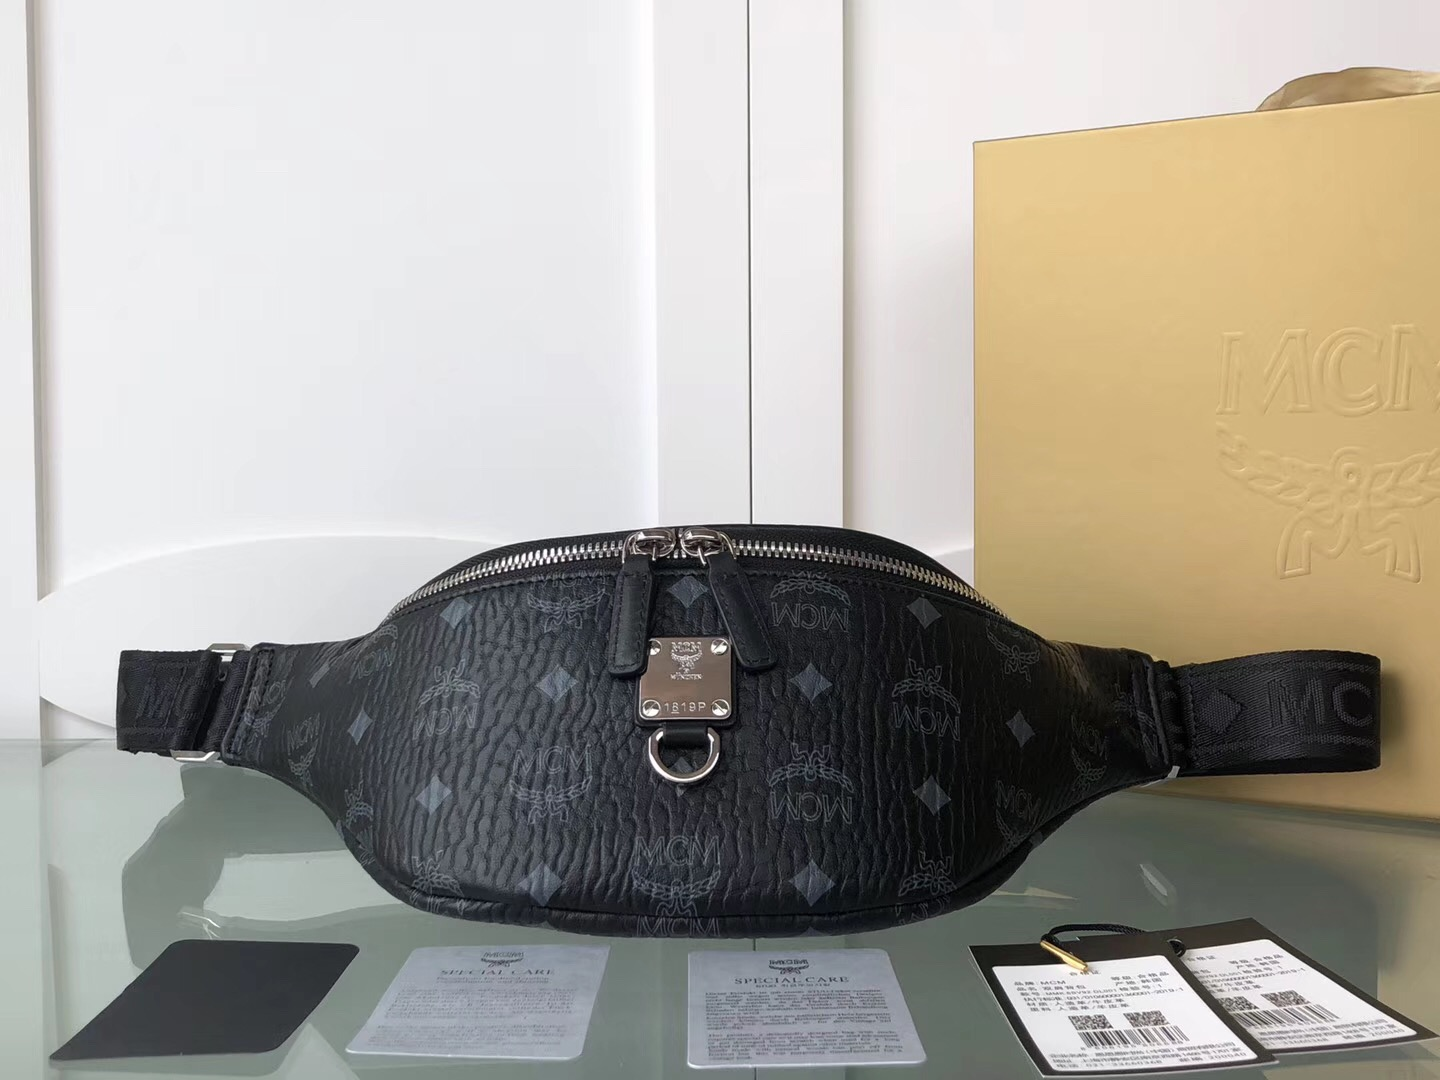 MCM Fursten BELT BAG CHEST SLING BAG 36*20*12CM